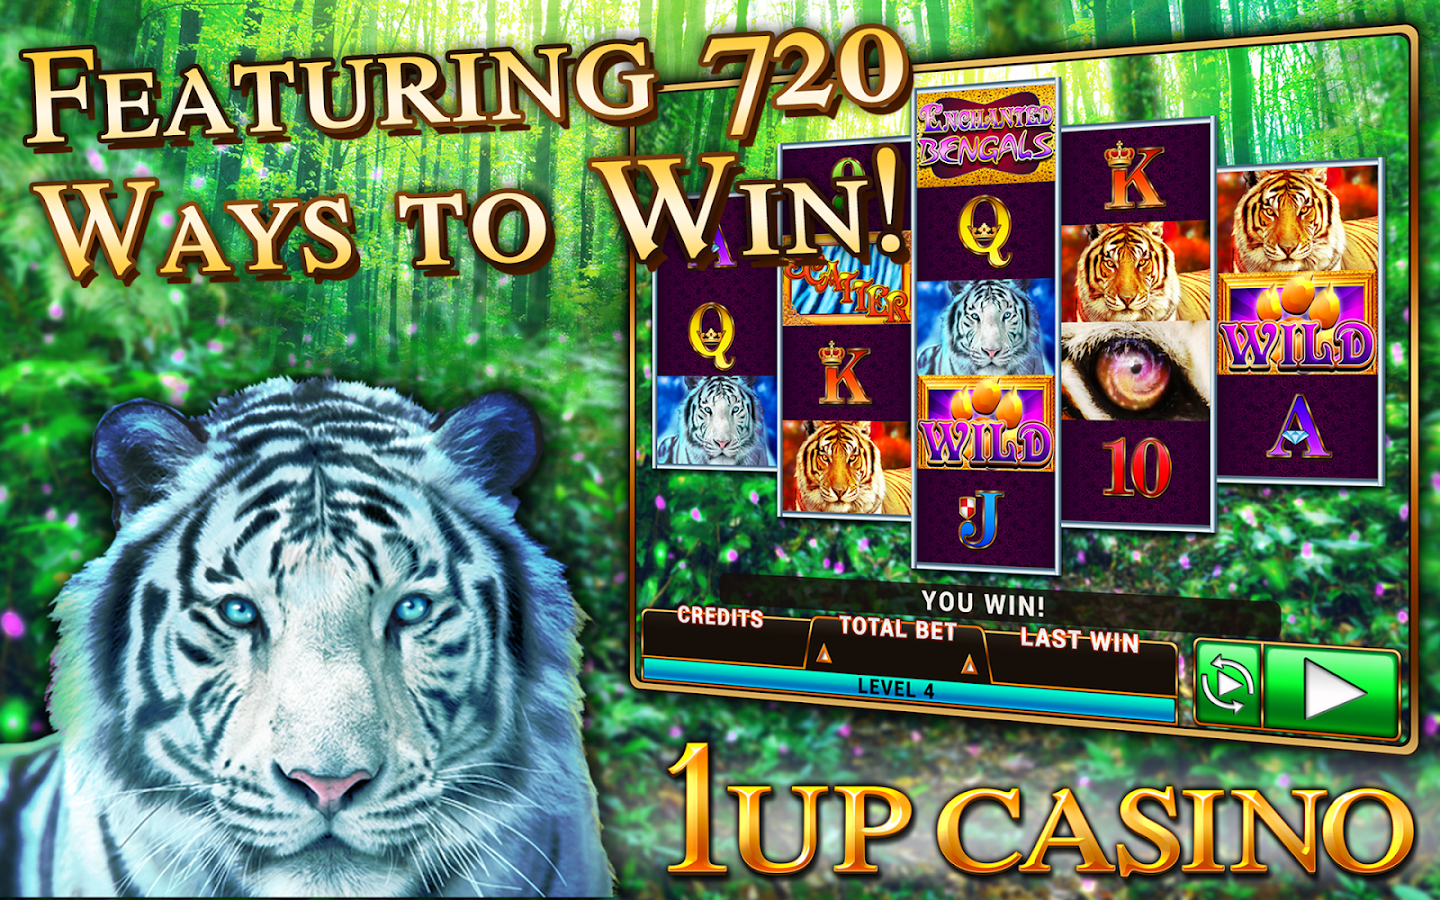 1up Casino Slot